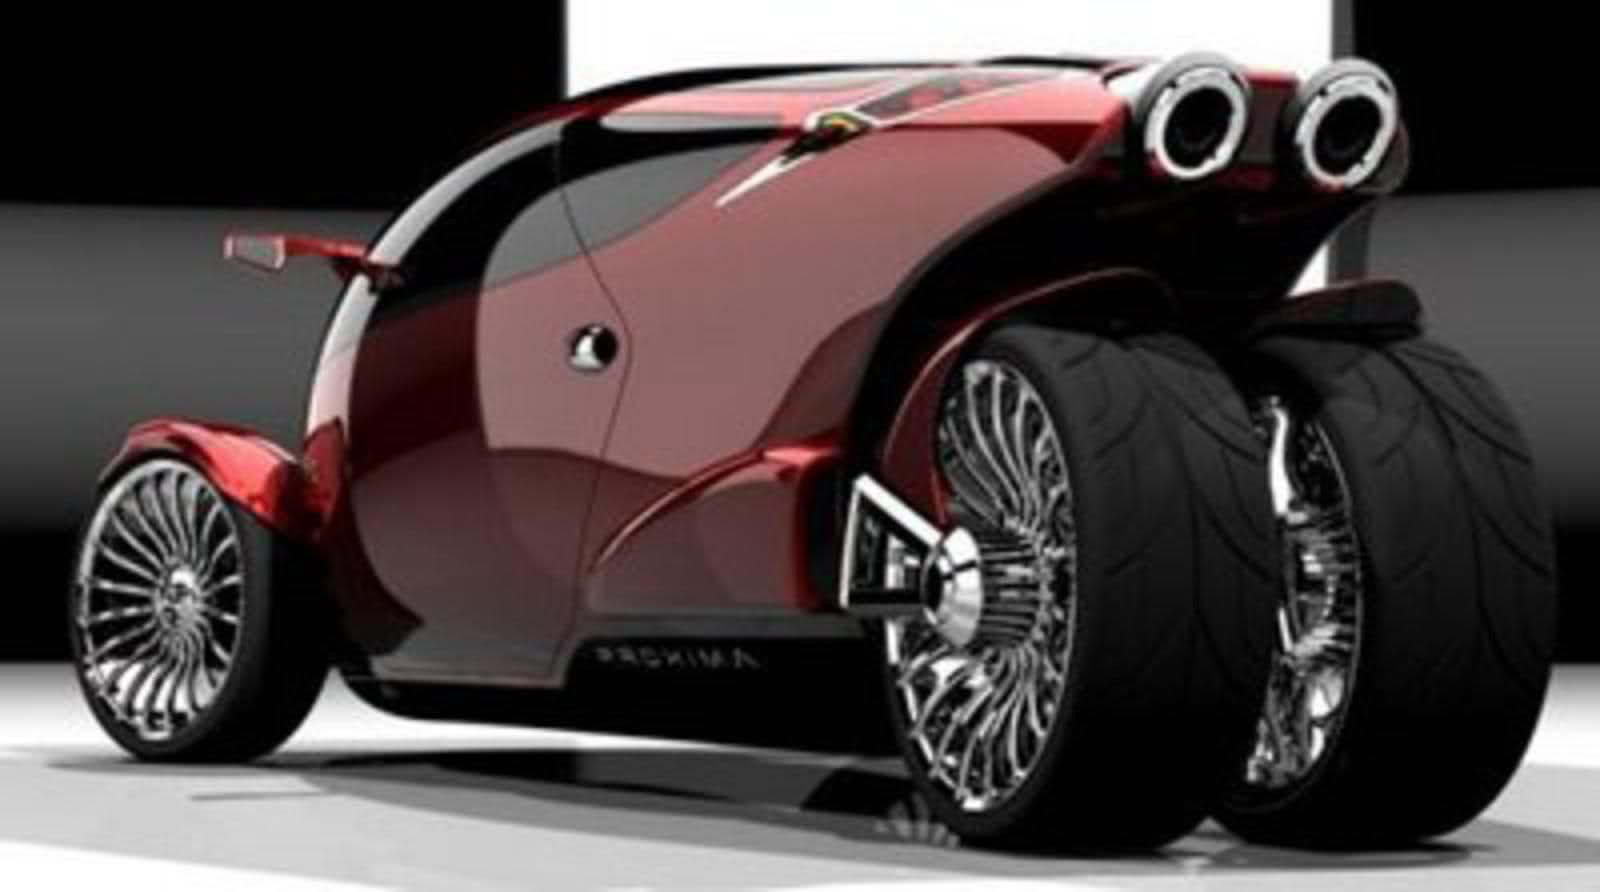 Coolest Cars In The World Google Search Sweetcoolest Cars In - What is the coolest car in the world